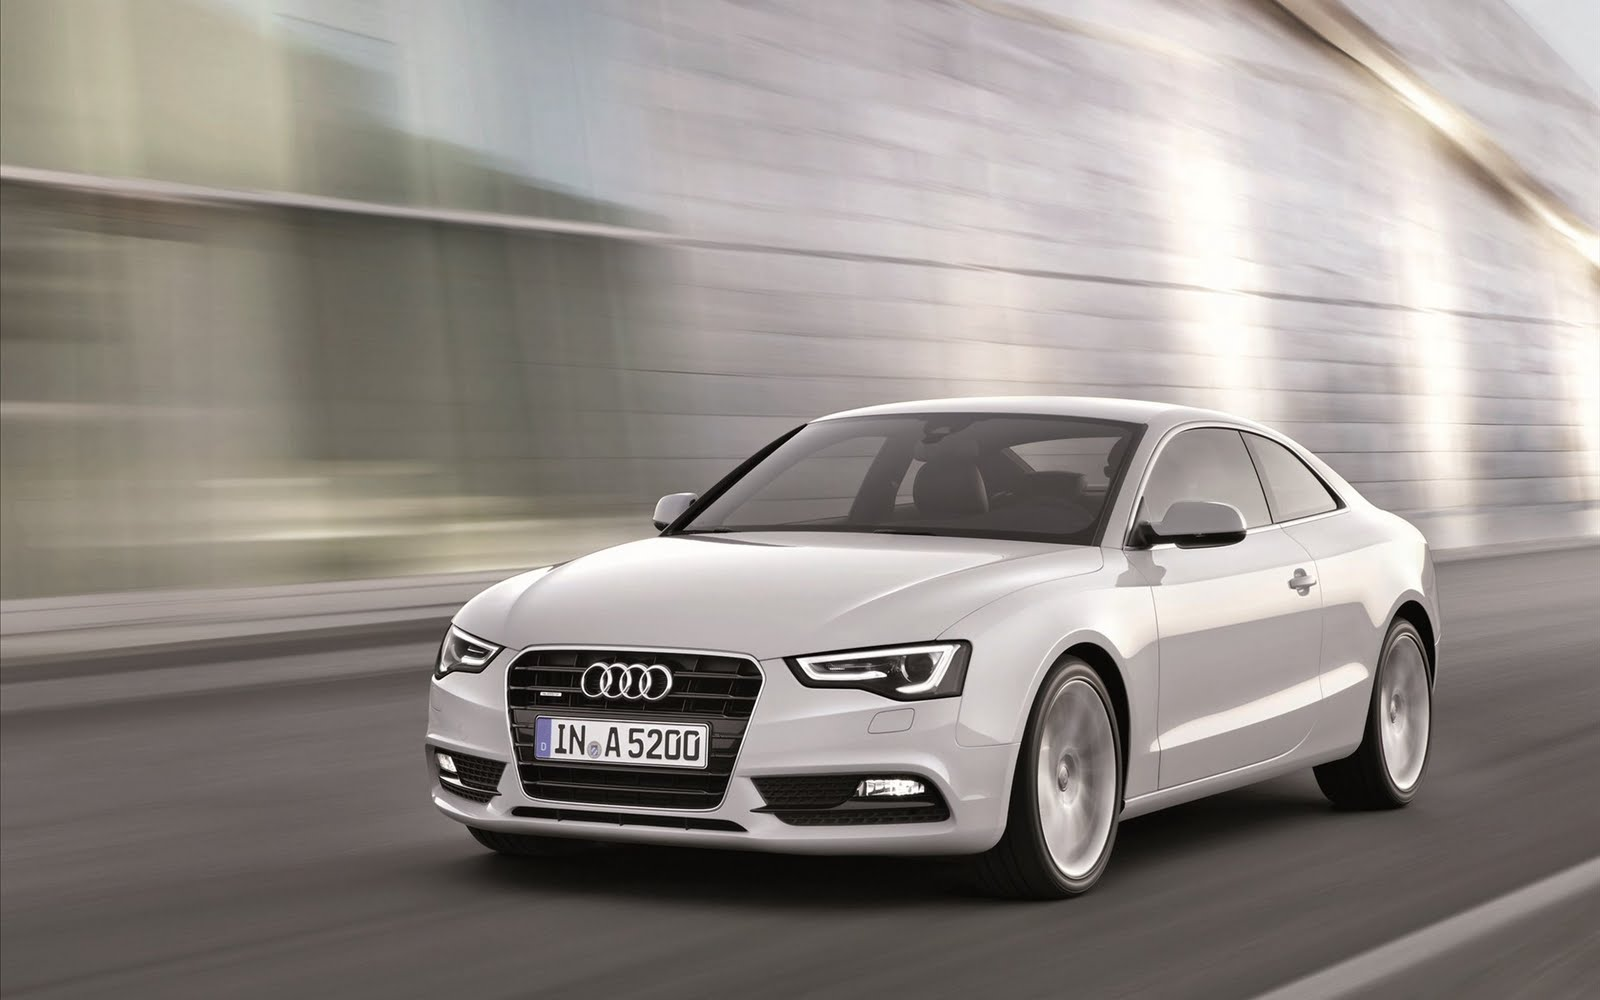 Audi Is Refreshing The A5 Model Series. Advanced Technologies Are Being  Added To The Sportback, Coupé, Cabriolet And S5 Models In The Areas Of The  Engine, ...